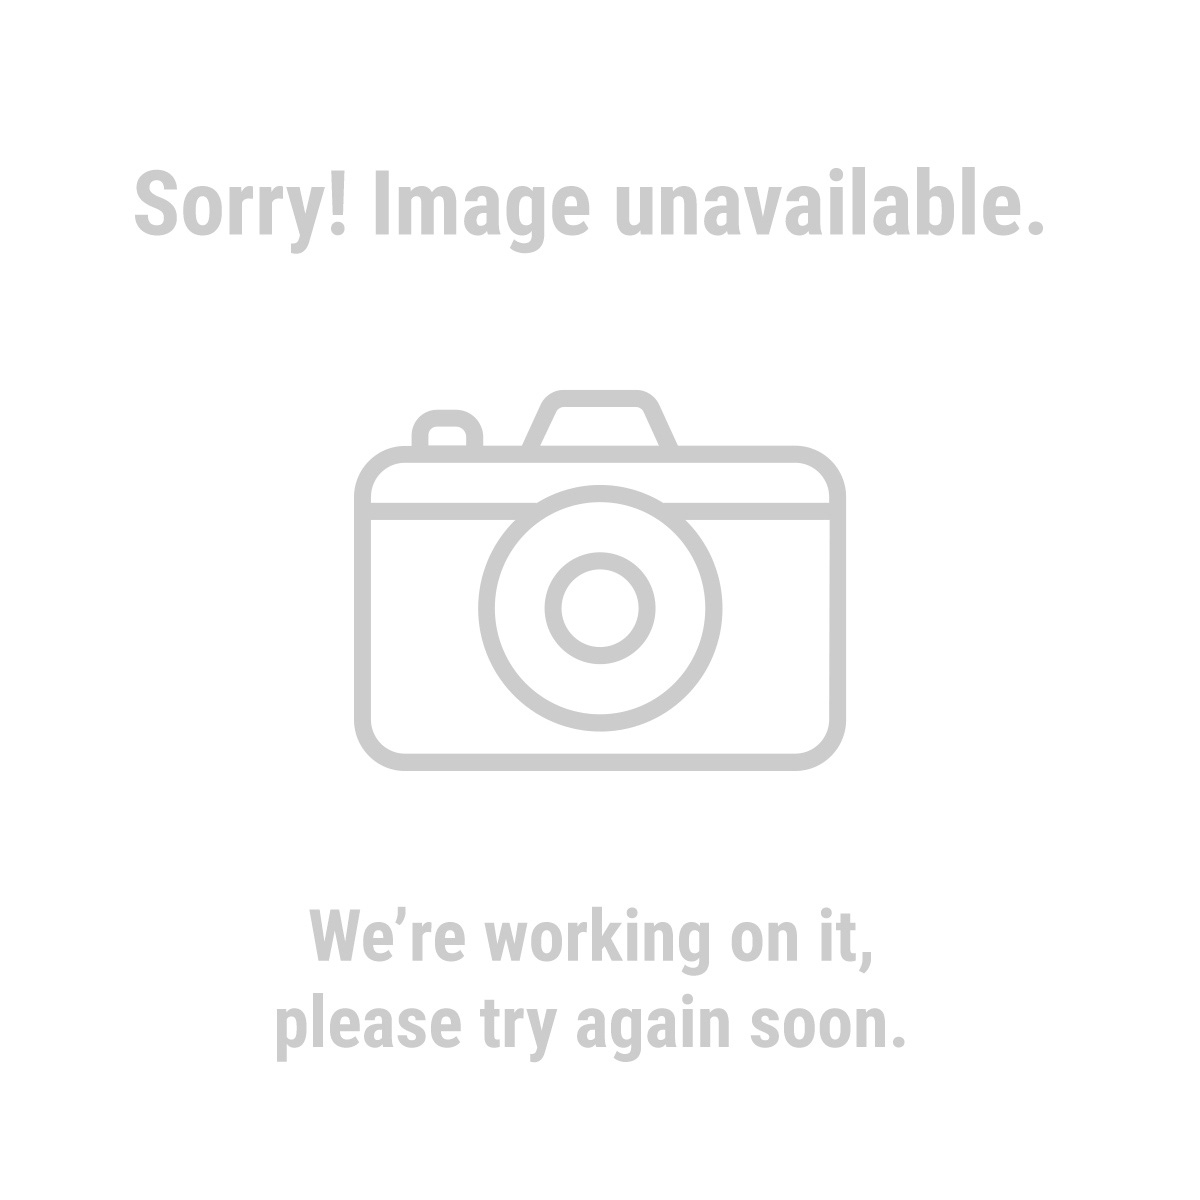 Central Machinery® 61317 Wet/Dry Shop Vacuum & Blower - 5 Gallon